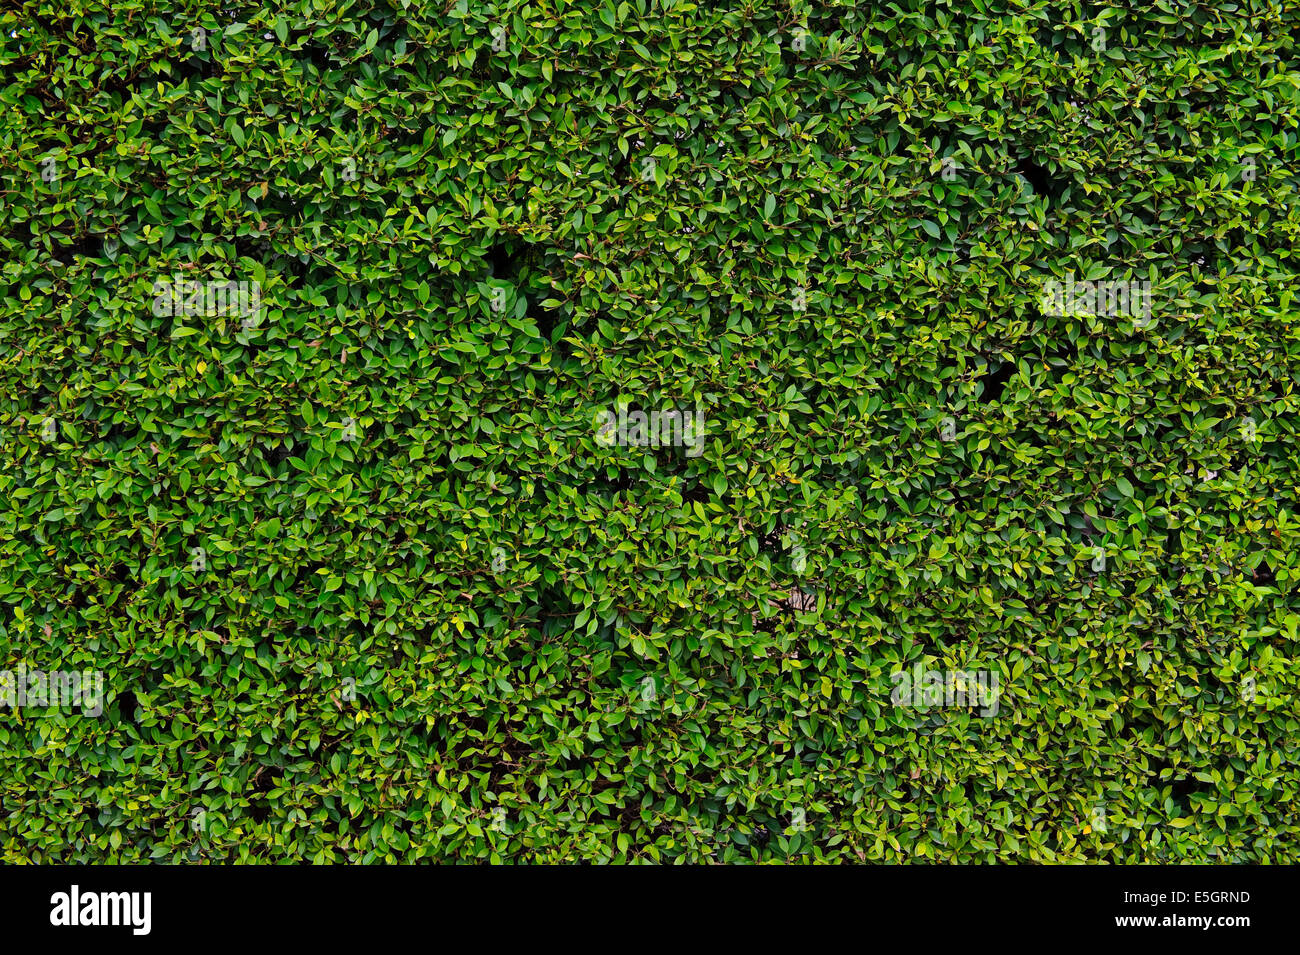 Hedge with green leafs - Stock Image